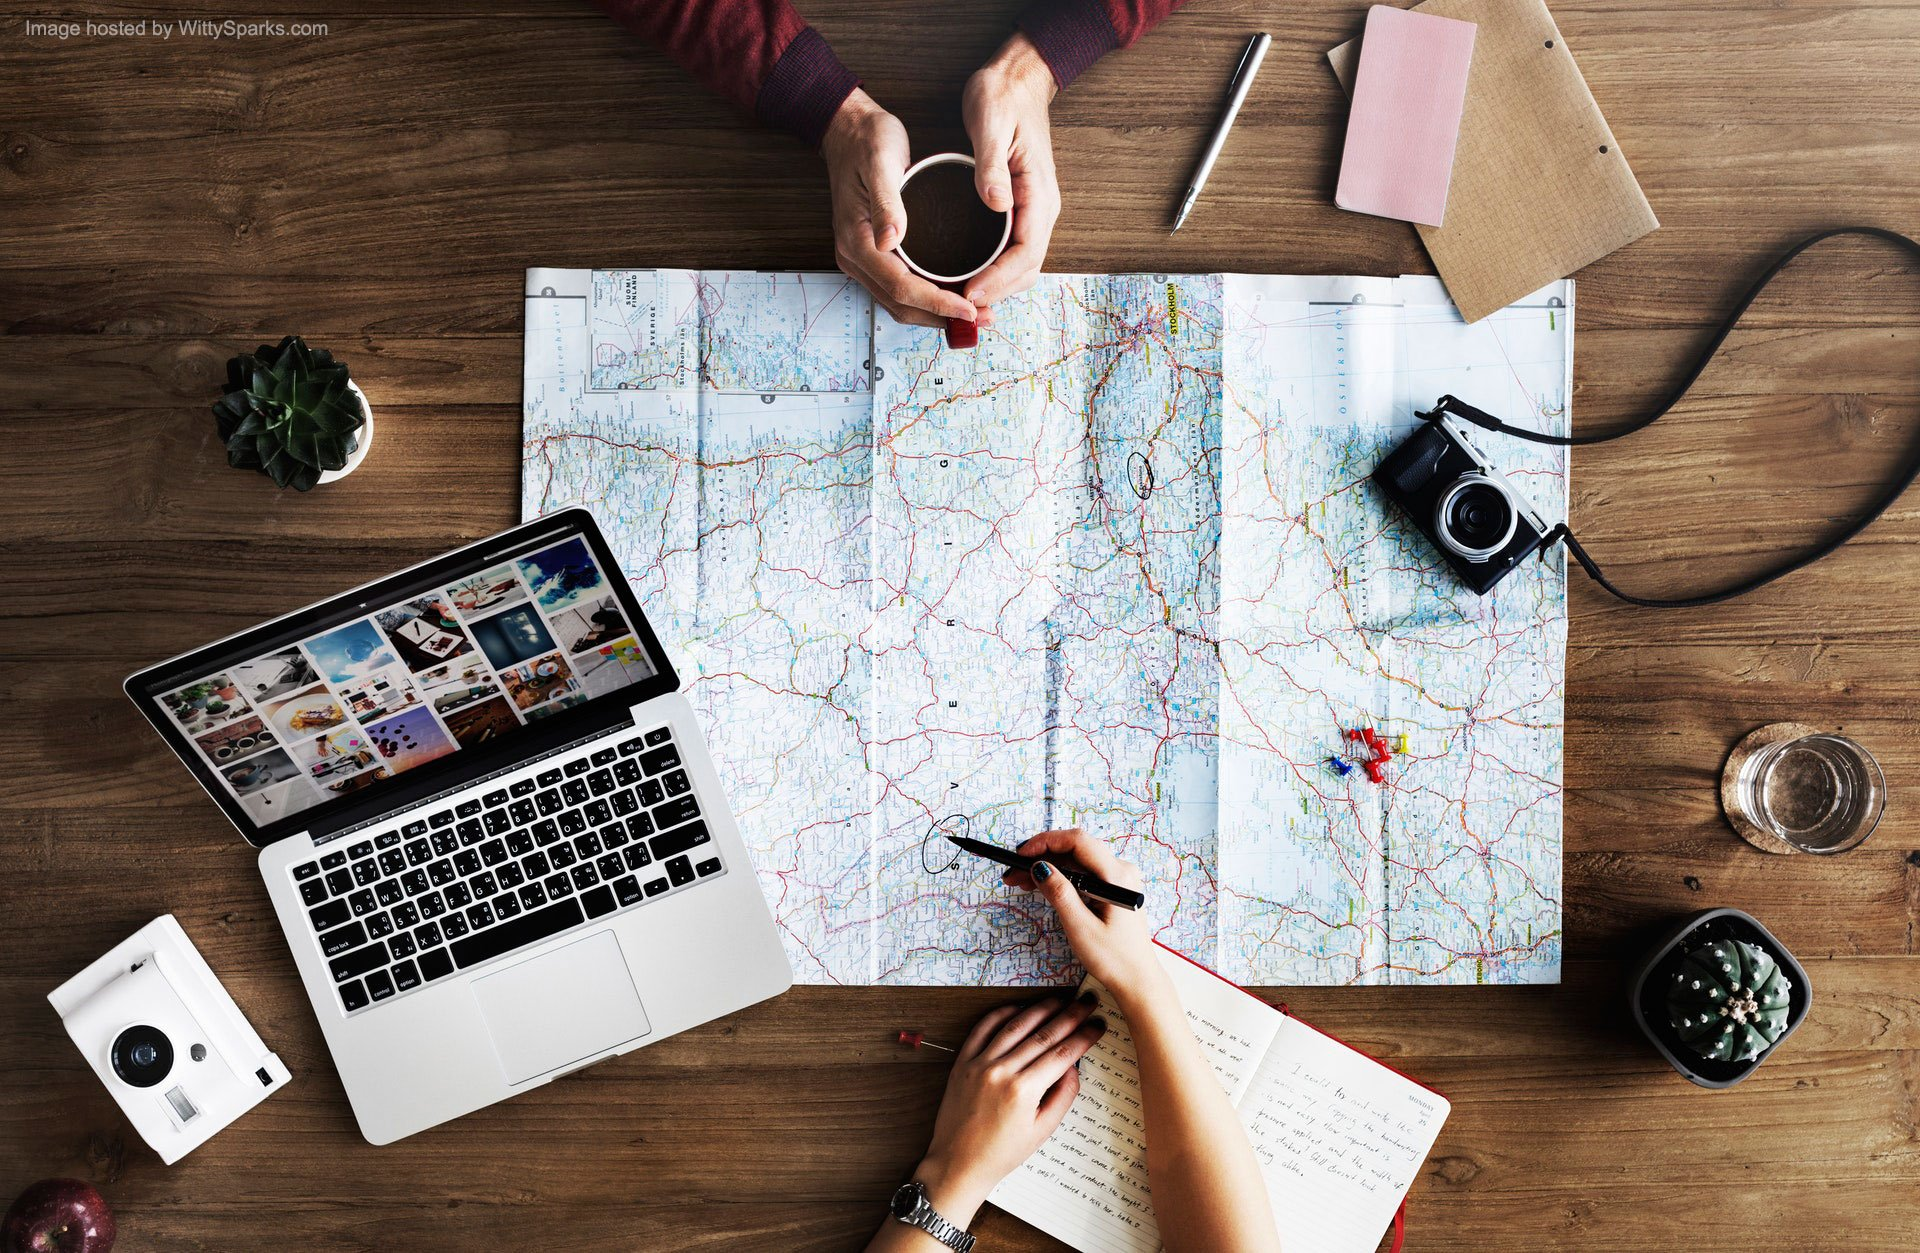 Plan your travel in advance